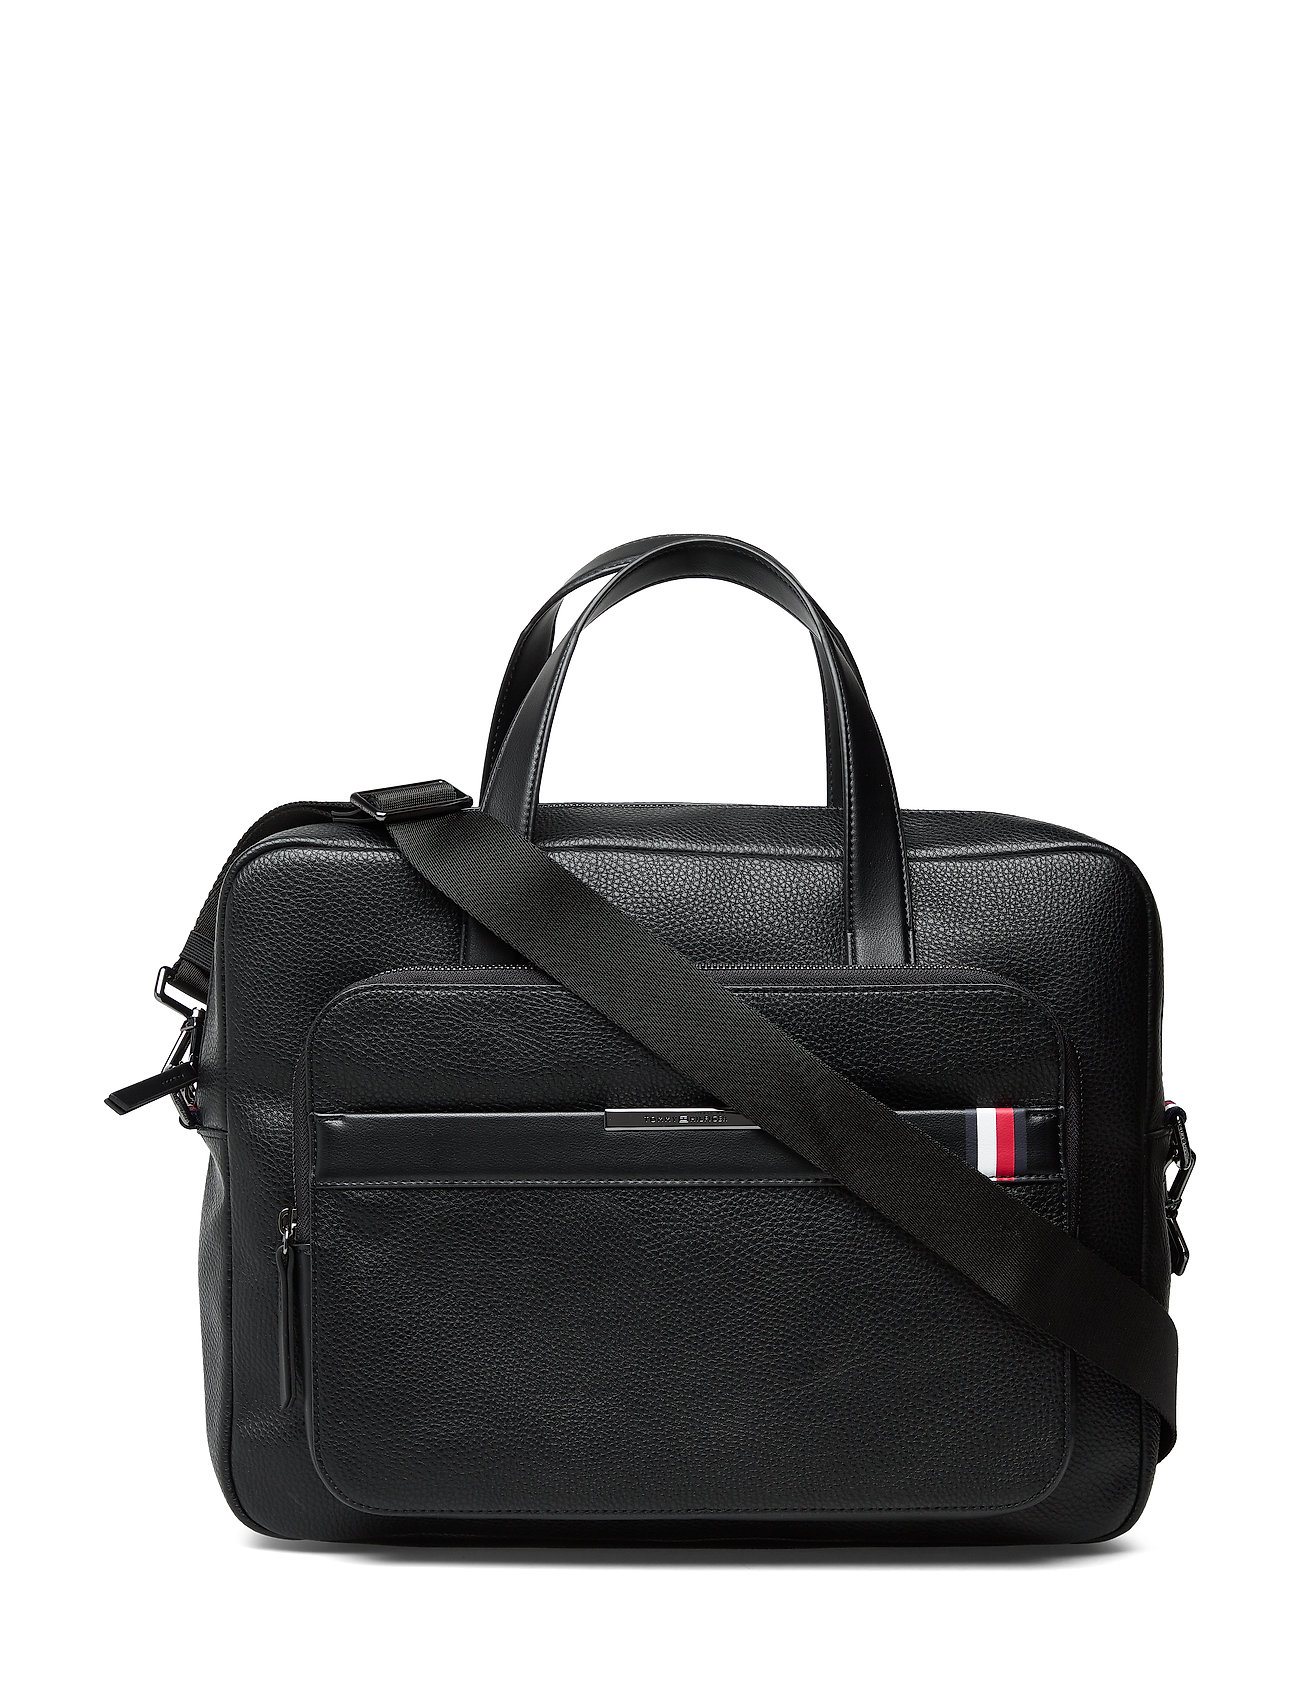 Tommy Hilfiger TH DOWNTOWN COMPUTER BAG - BLACK